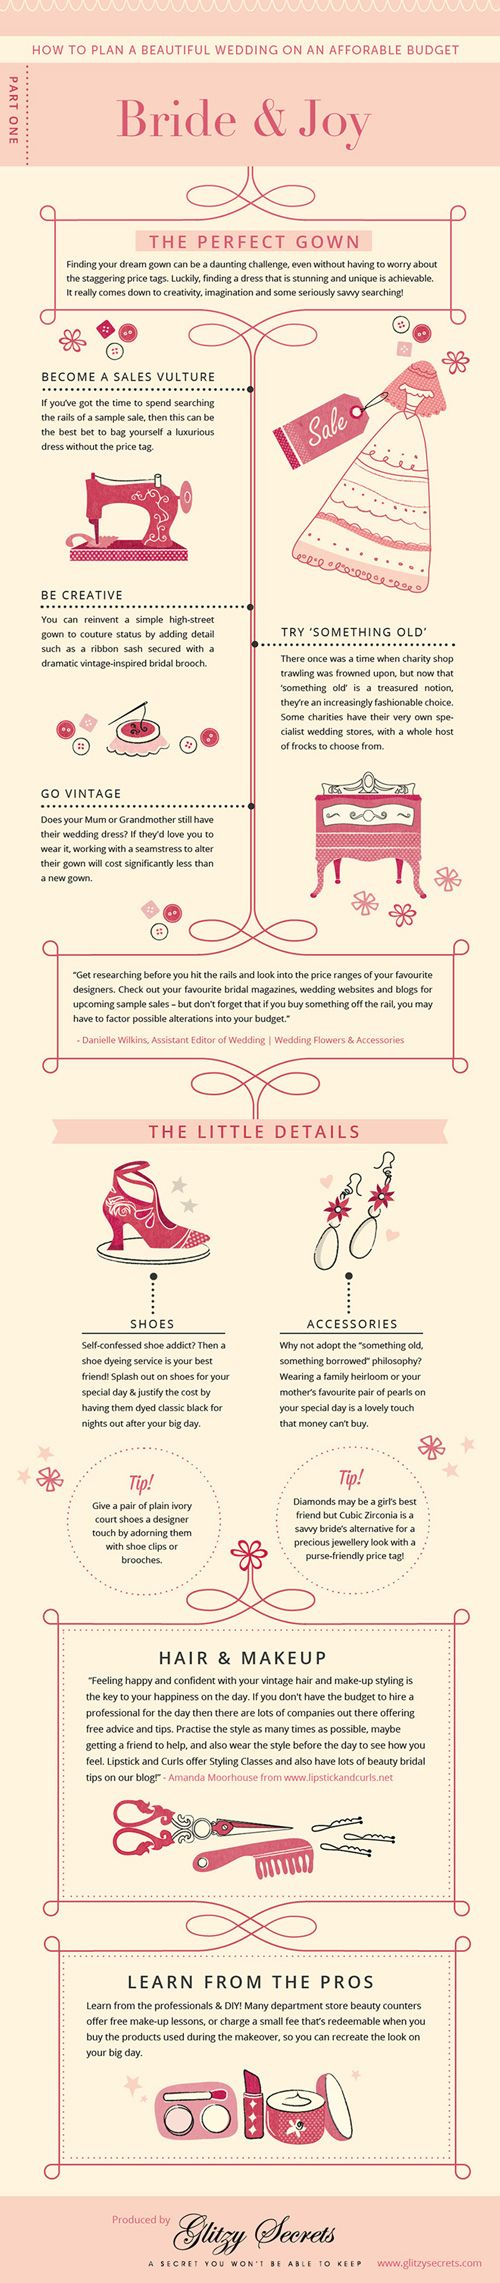 Budget Wedding Ideas - Part 1 of a fun series of wedding infographics from Glitzy Secrets full of savvy saving tips feat. experts @Judy Clark magazine and @Lee Ann Dockery-Robinson and Curls